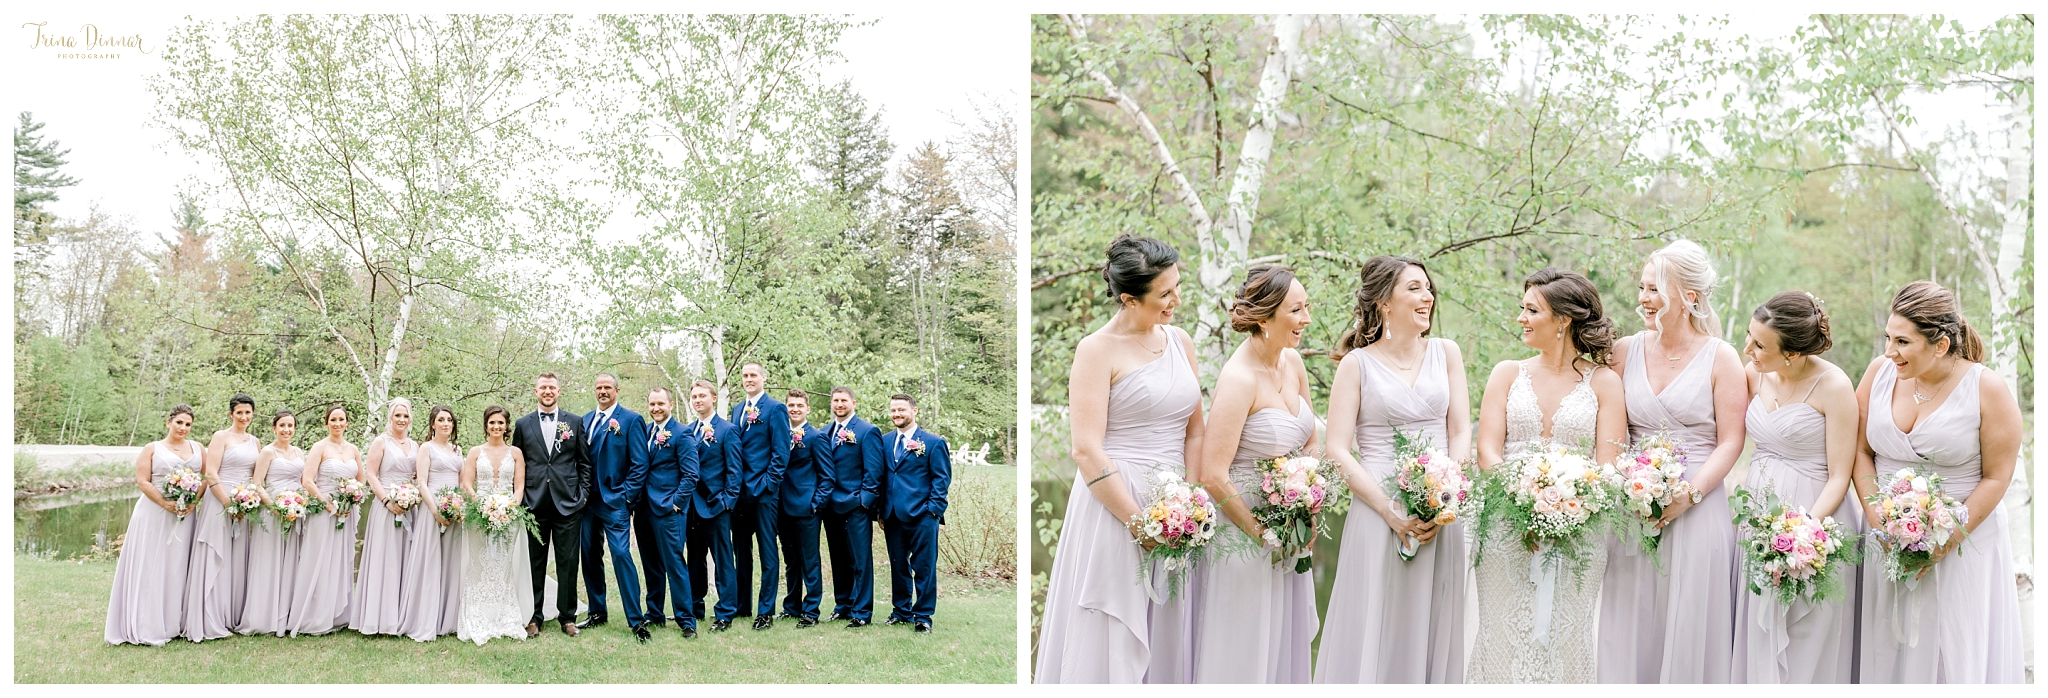 Wedding party photography portraits at Sunday River in Newry, Maine.